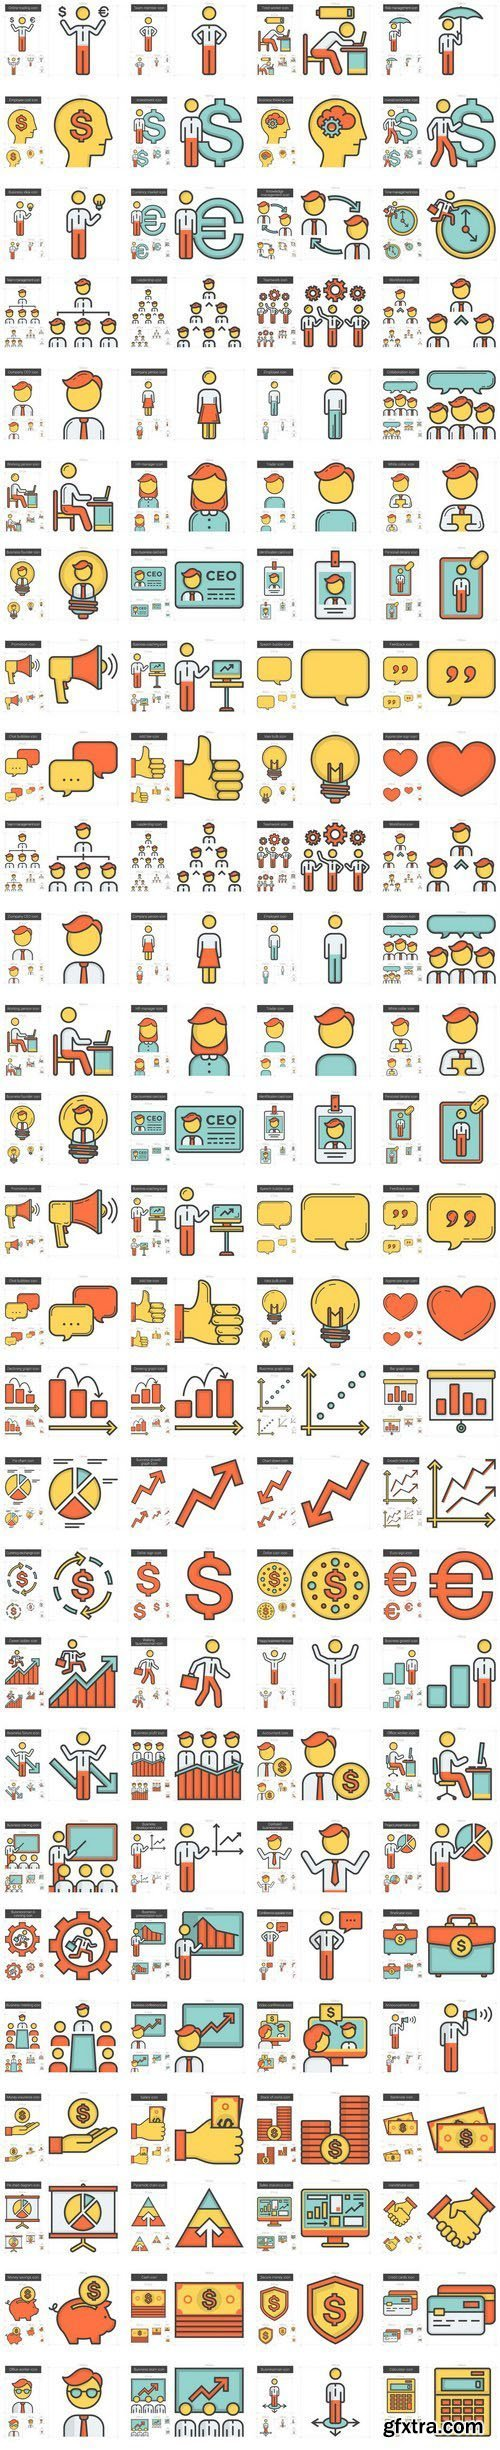 Human resources line icon set - 20xEPS